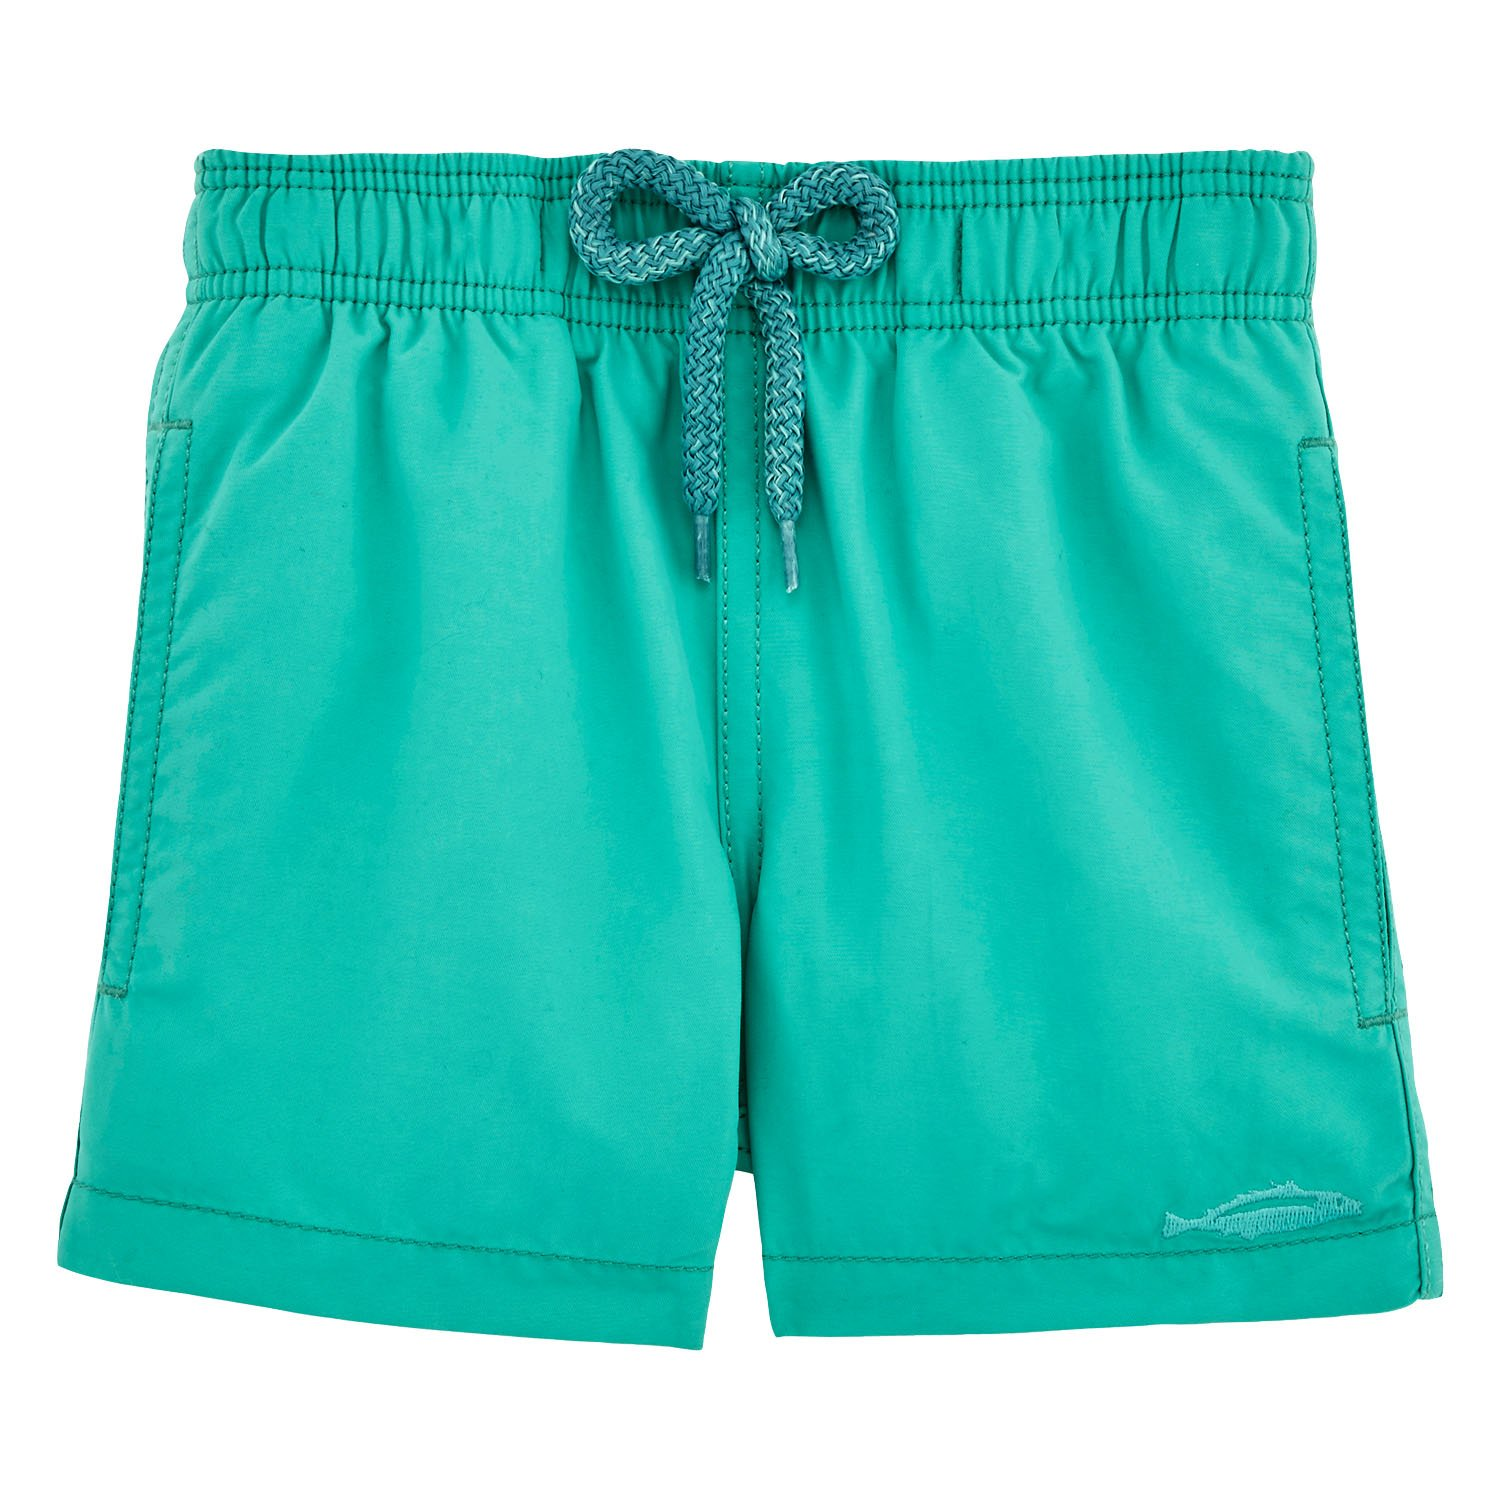 Vilebrequin Water-reactive Sardines à l'Huile Swim Shorts - Boys - veronese green - 8Yrs